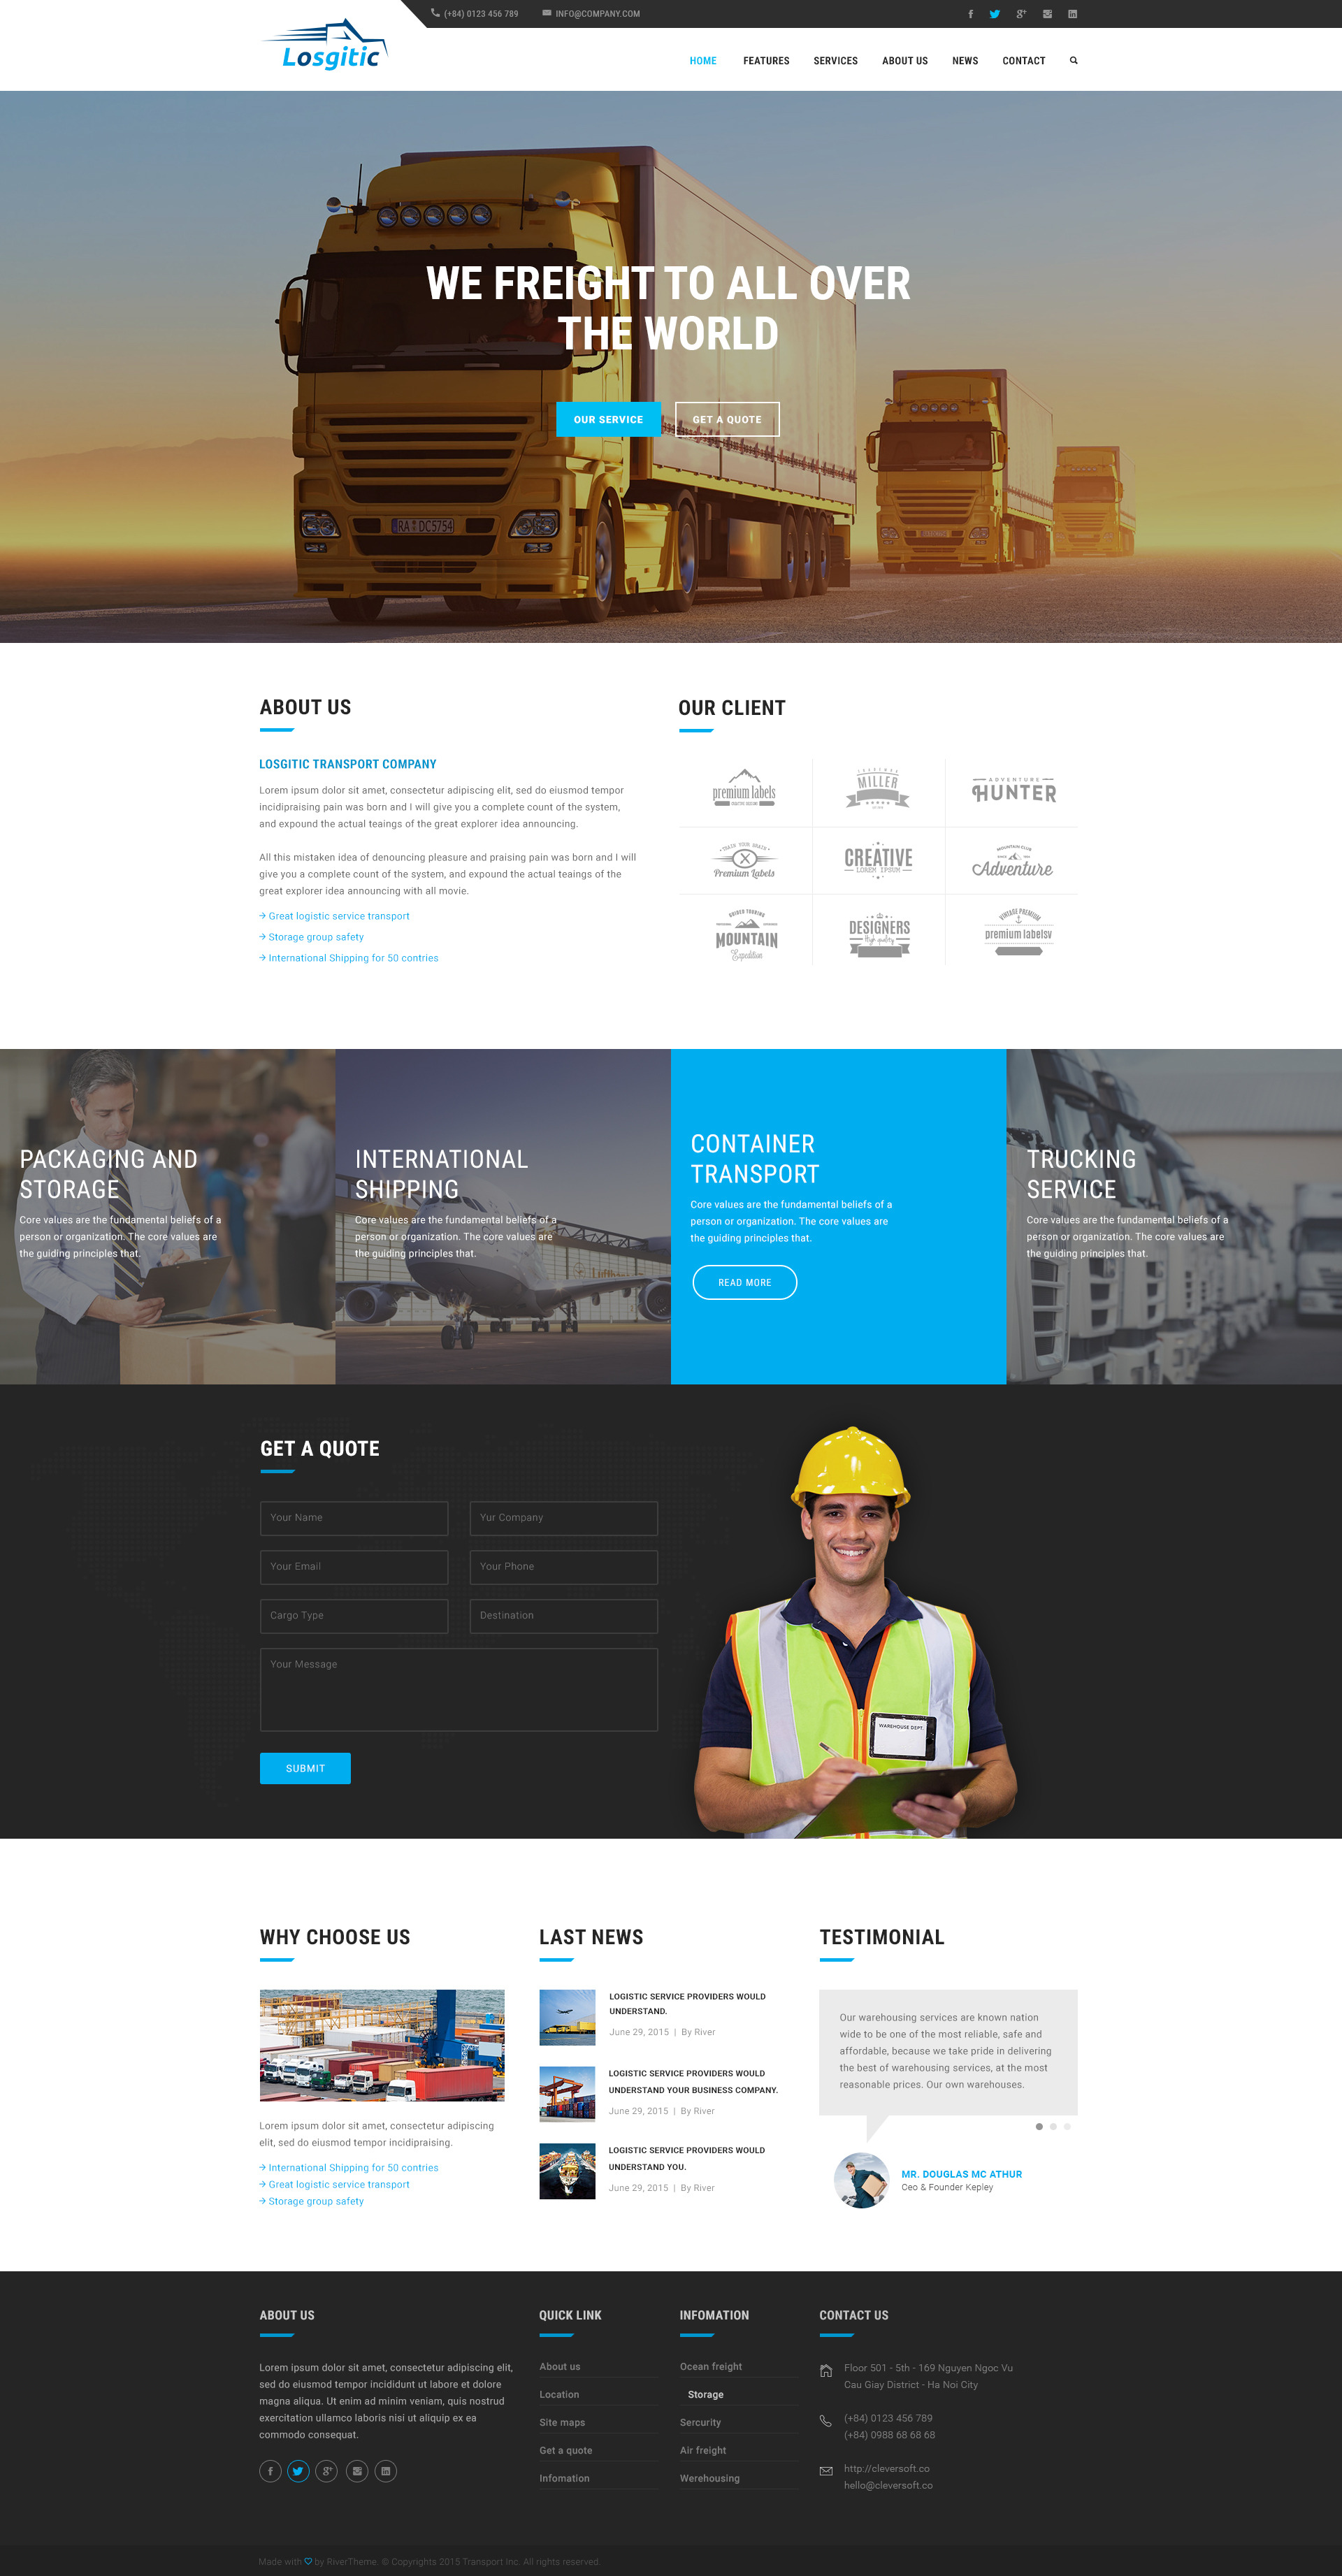 Lovely 1 Hexagon Template Big 1 Year Experienced Software Developer Resume Sample Flat 10 Business Card Template 10 Half Hexagon Template Youthful 100 Free Resume Builder Dark15 Year Old Resume Example Logistic   Warehouse \u0026 Transport PSD Template By CleverSoft ..